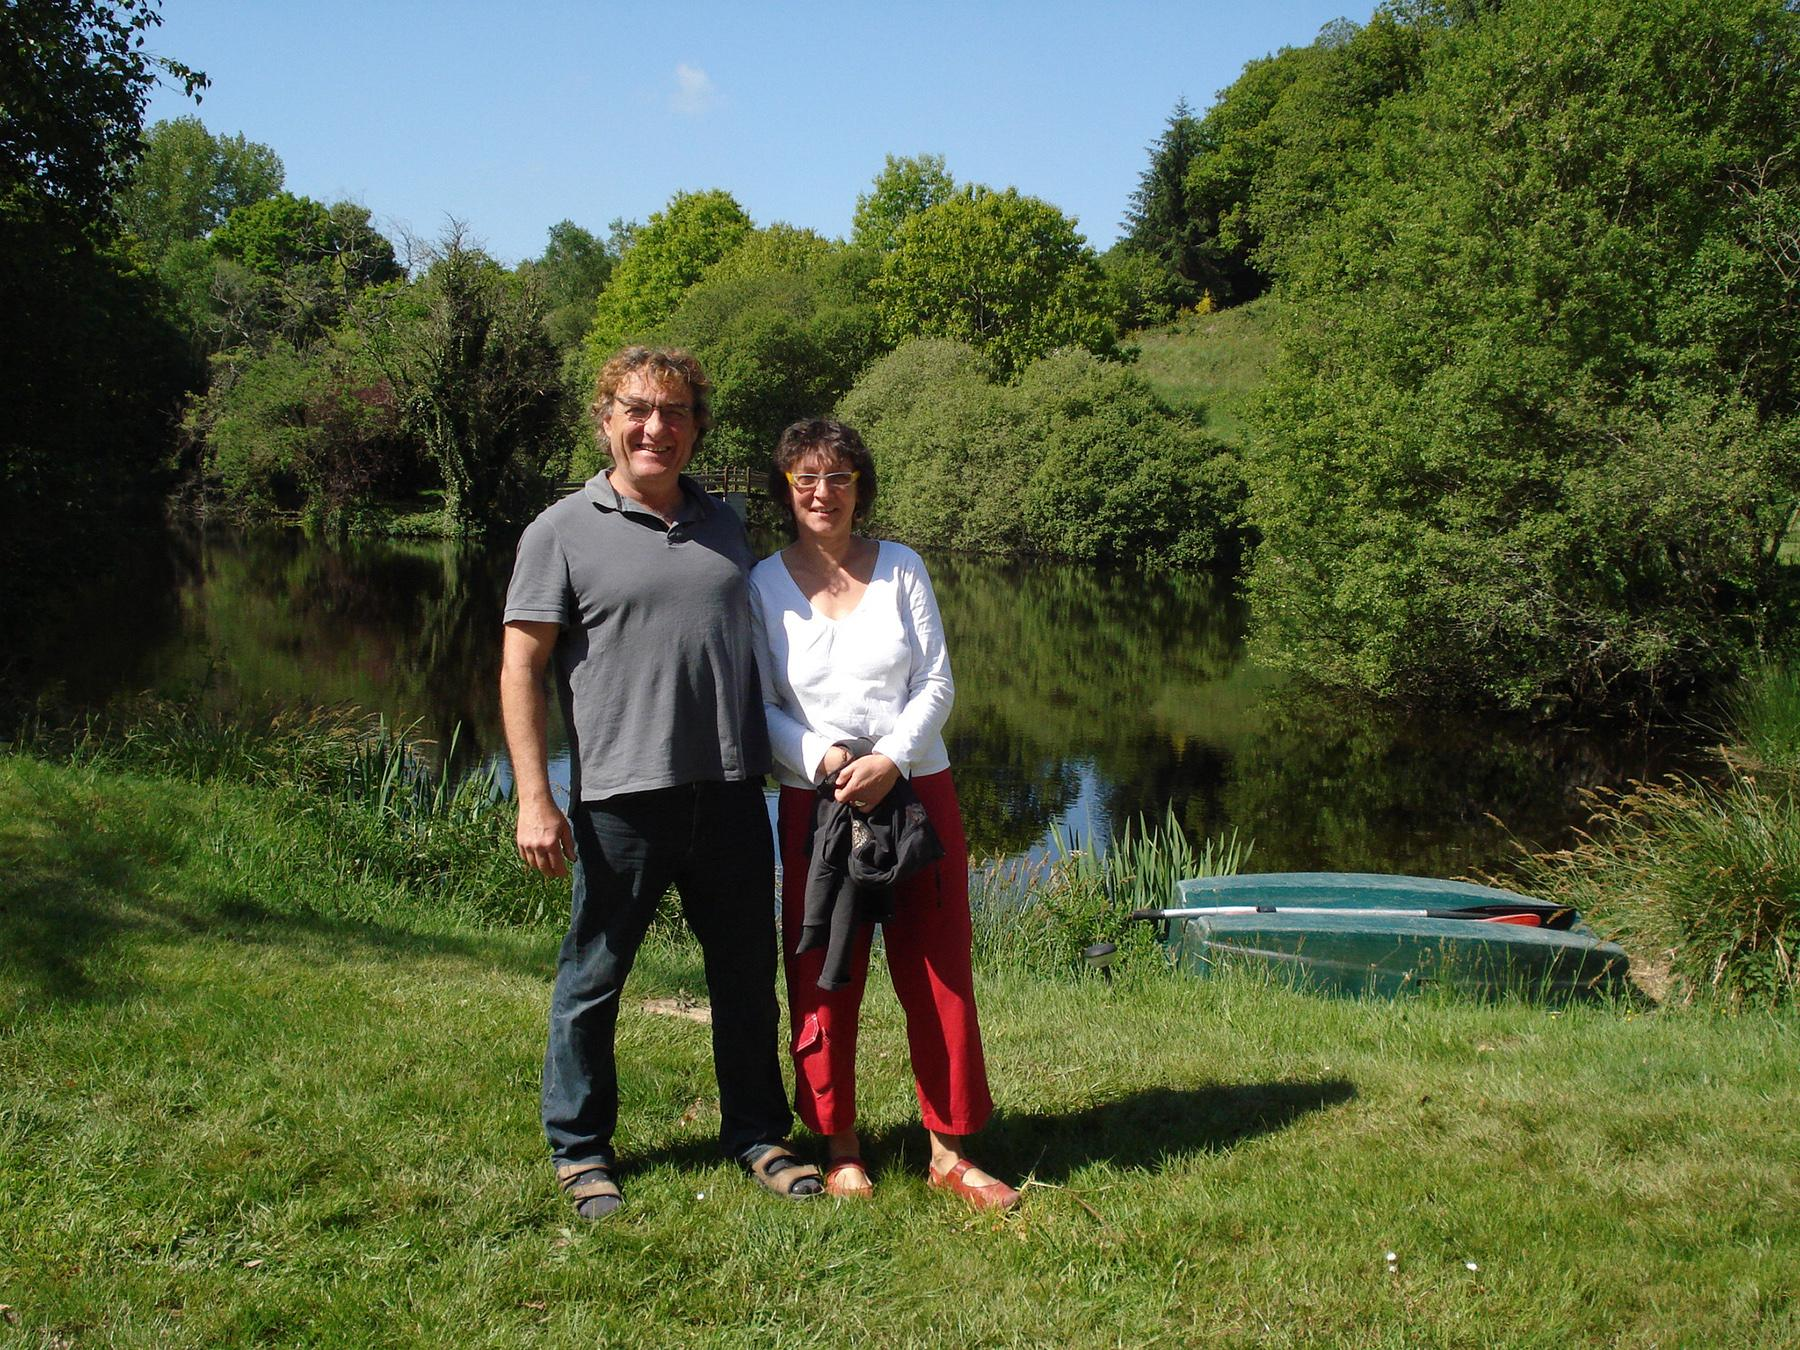 Owner Vallon de Kerlenn Camping Nature - GUERN